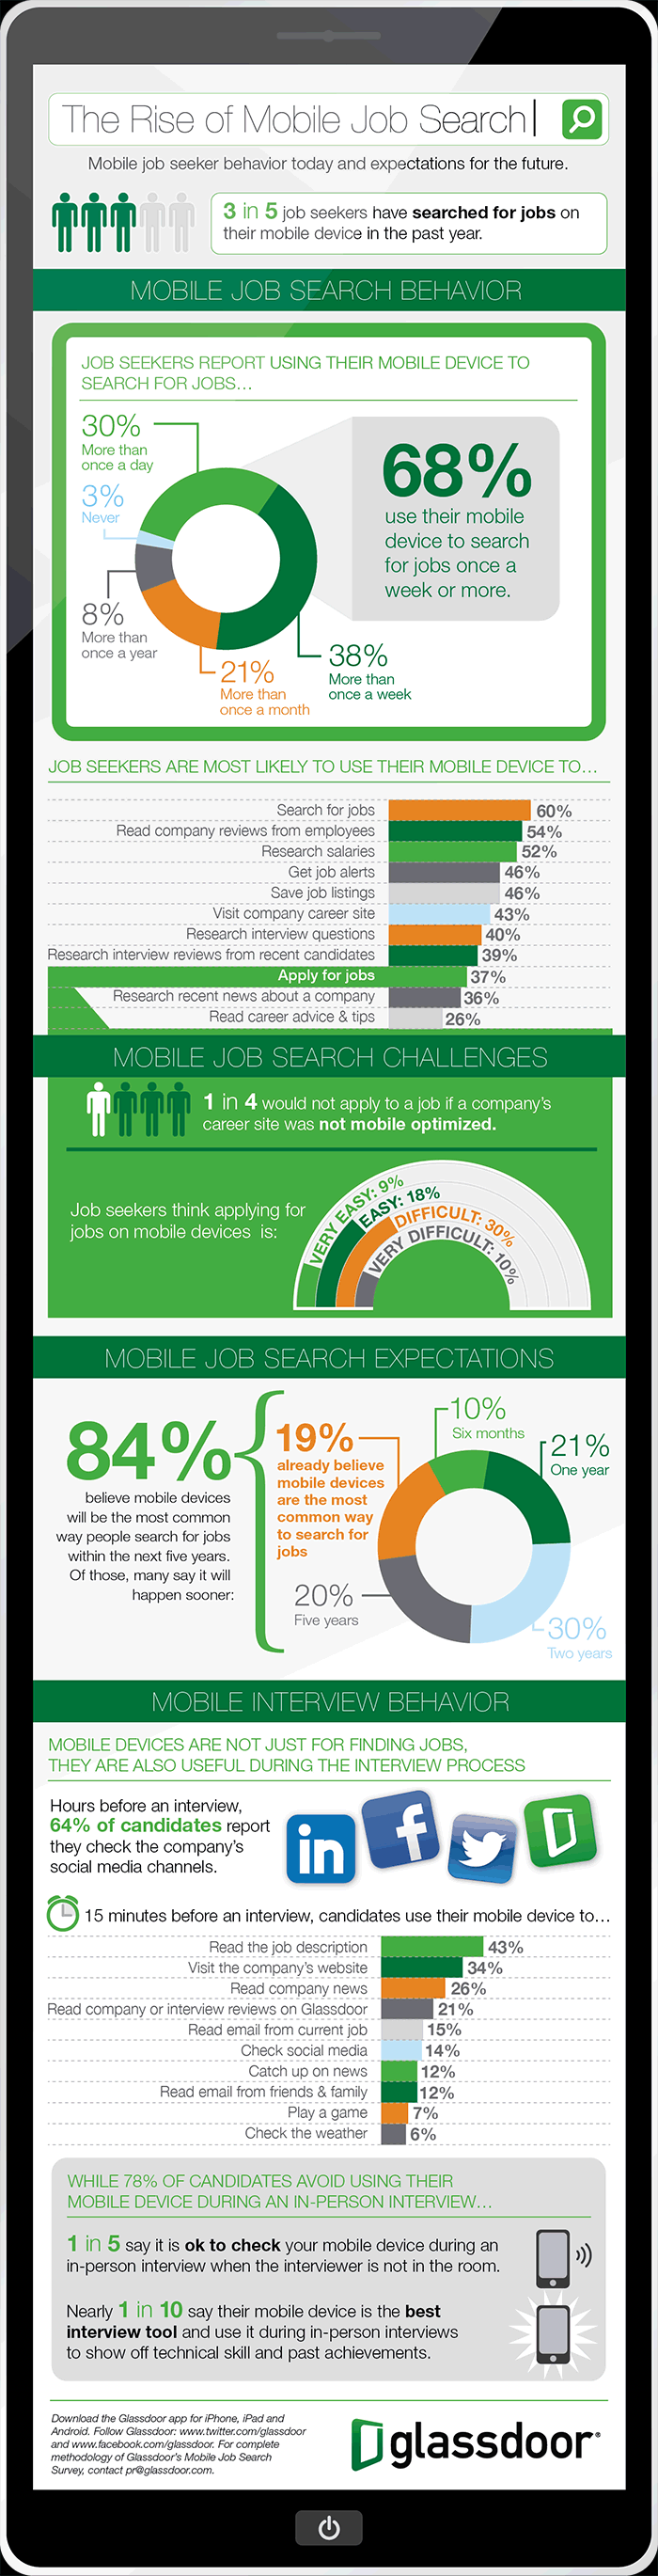 reasons to consider a mobile recruitment website application we noted some of the key statistics for recruiters as 3 in 5 job seekers